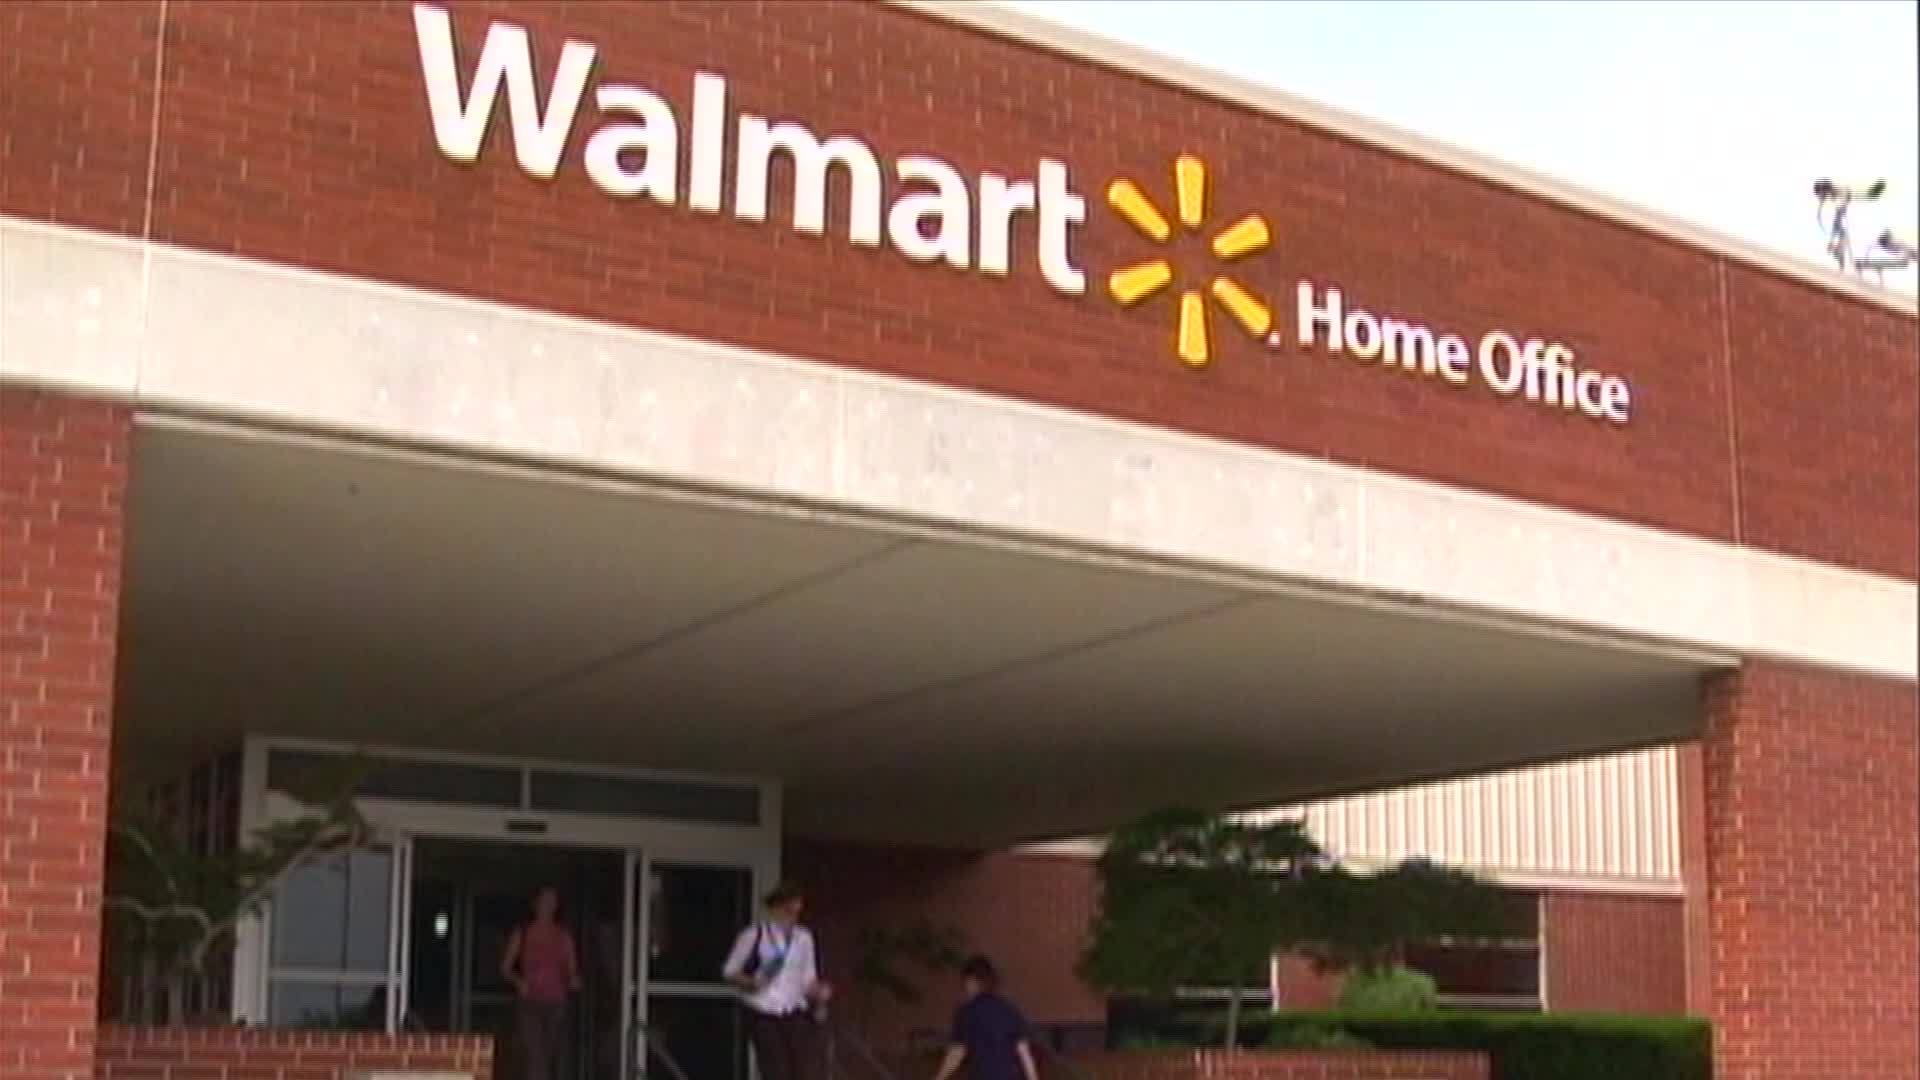 Walmart_to_recruit_students_with_college_5_20190604165851